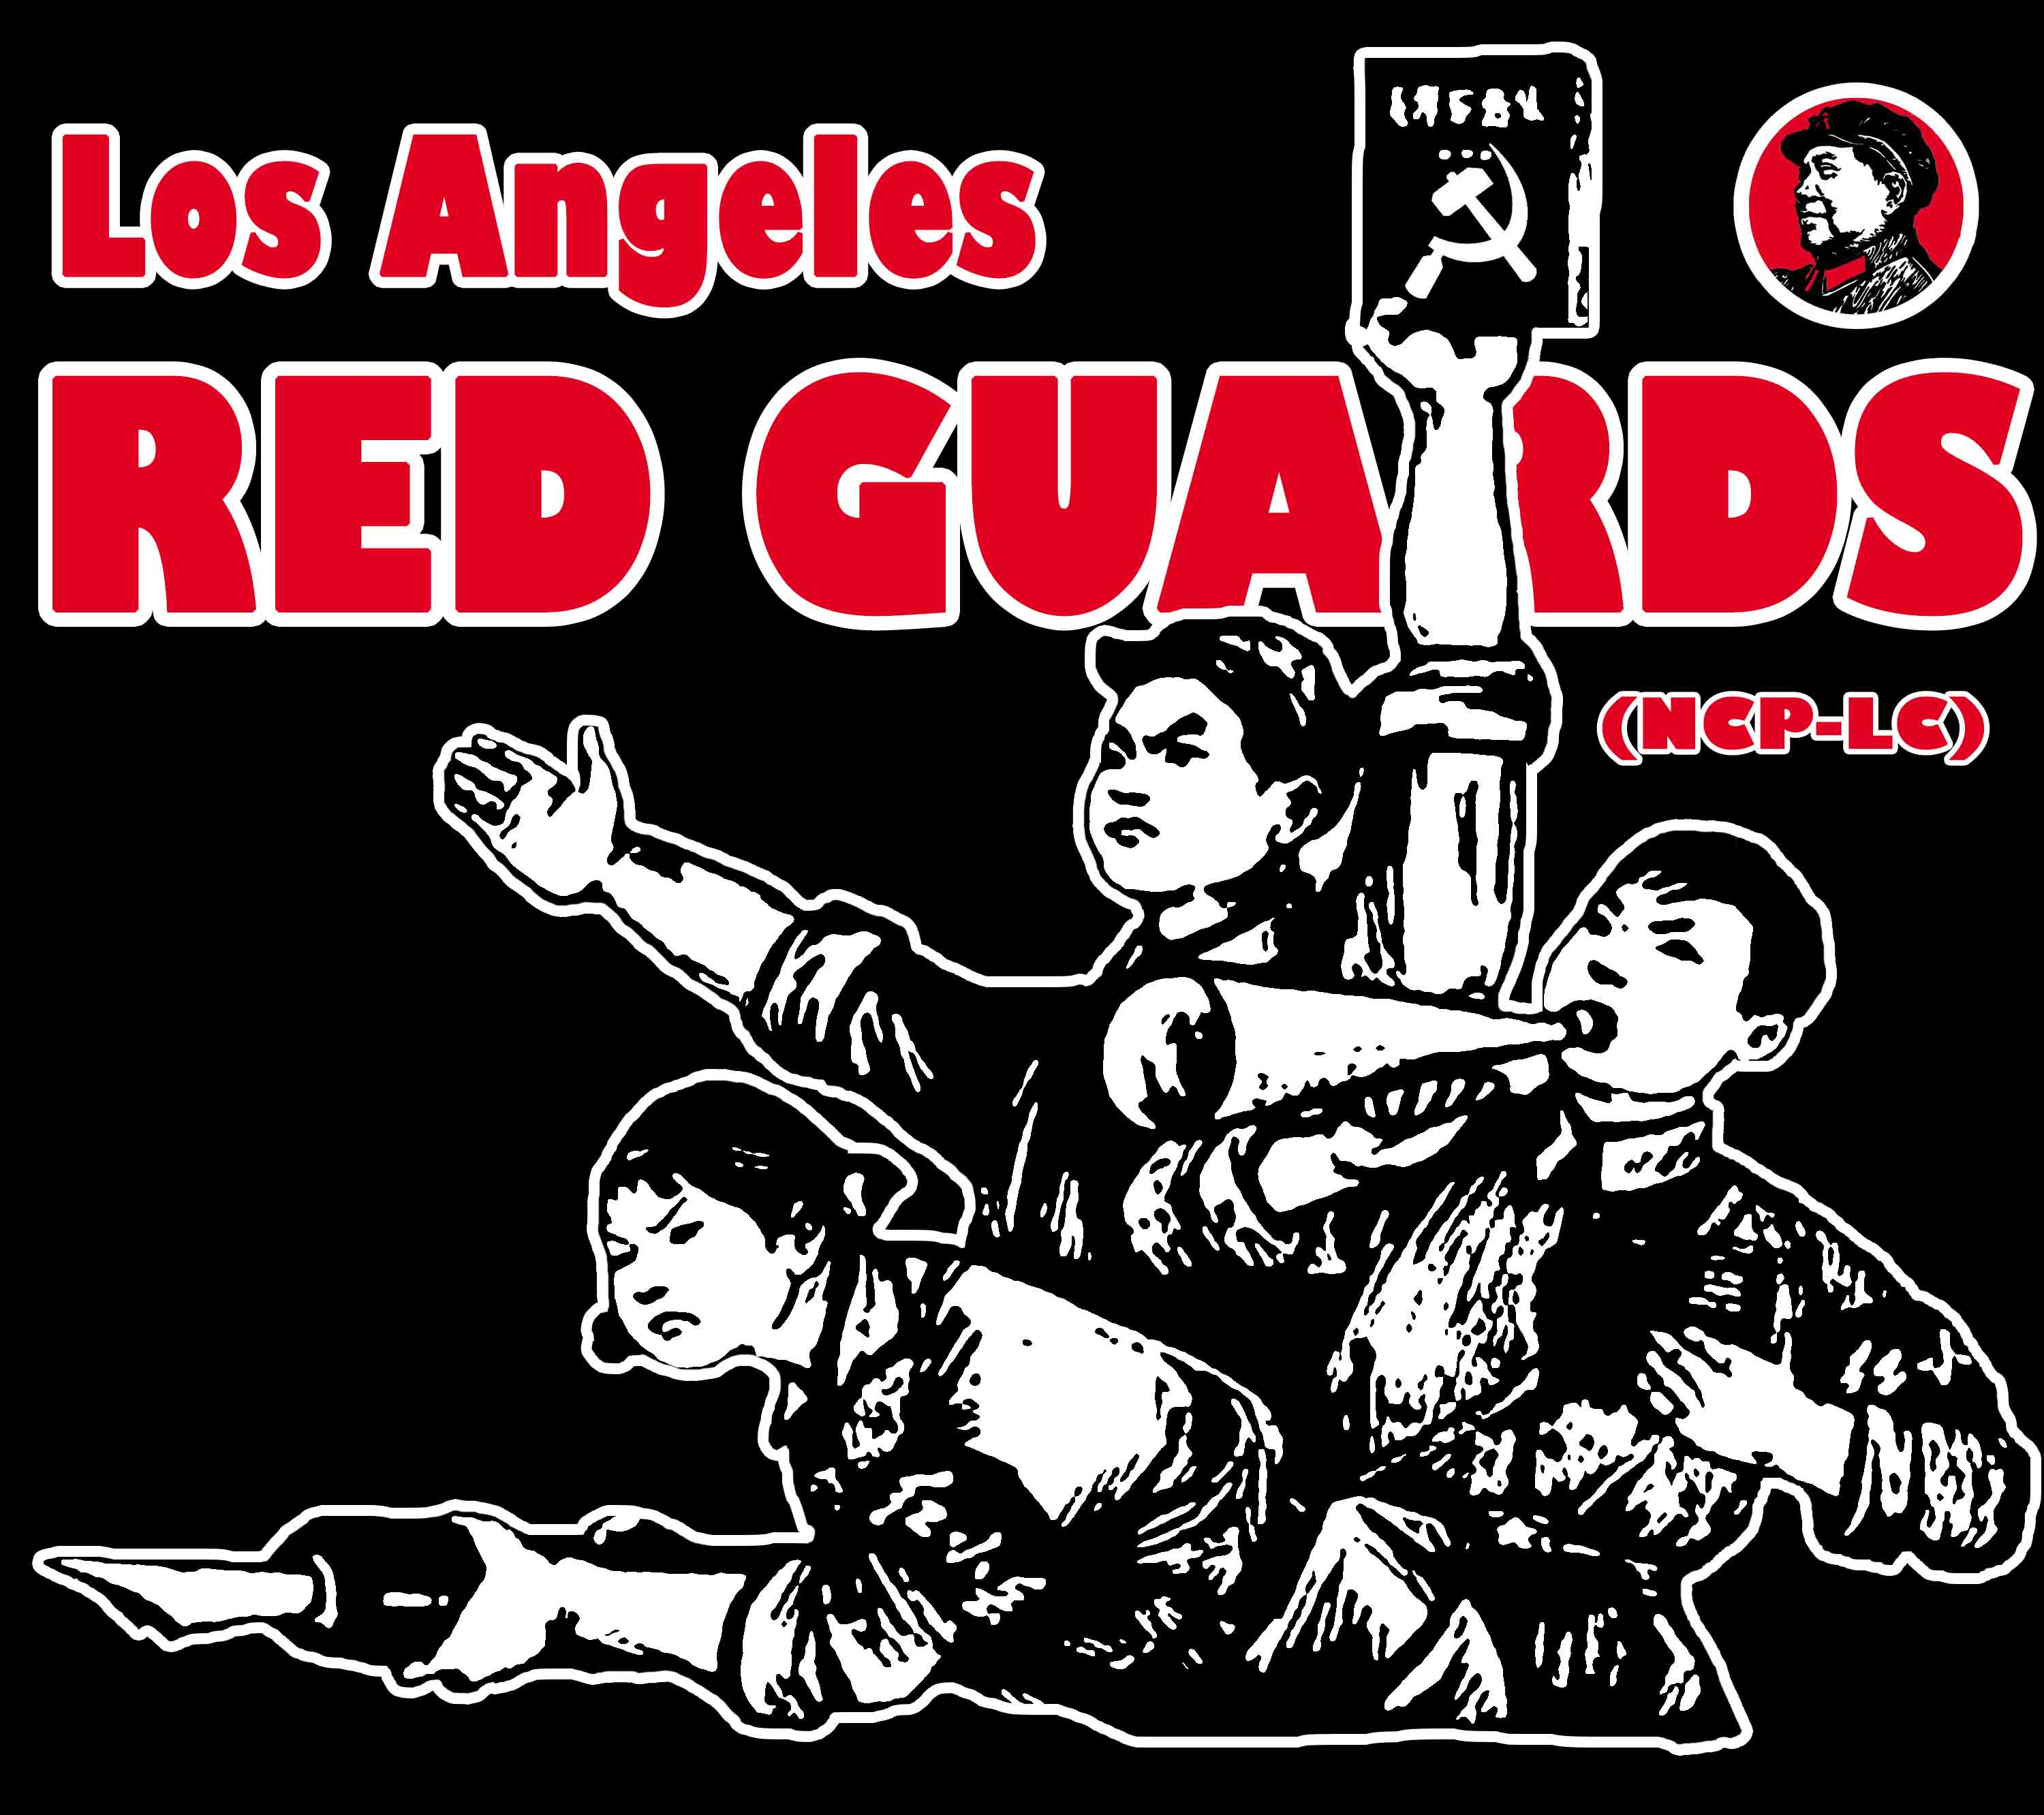 Red Guards - Los Angeles (NCP-LC)